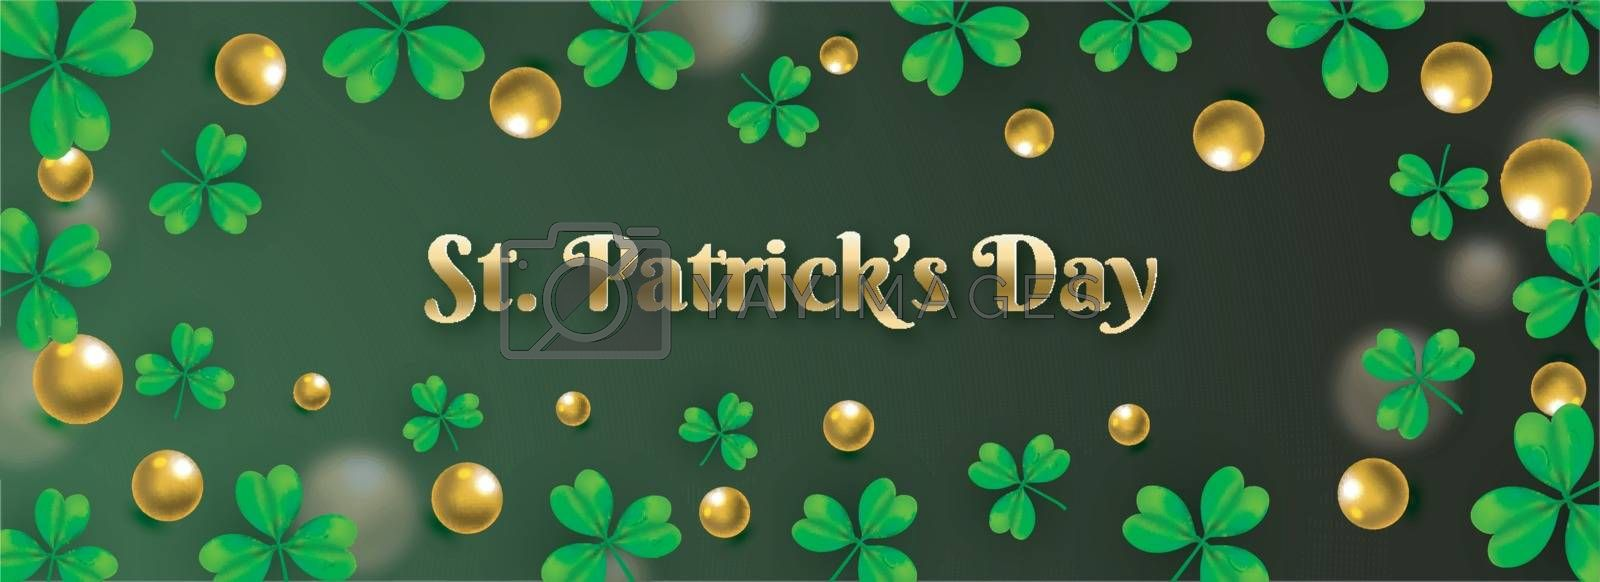 Royalty free image of St. Patrick's Day header or banner design decorated with clover  by aispl